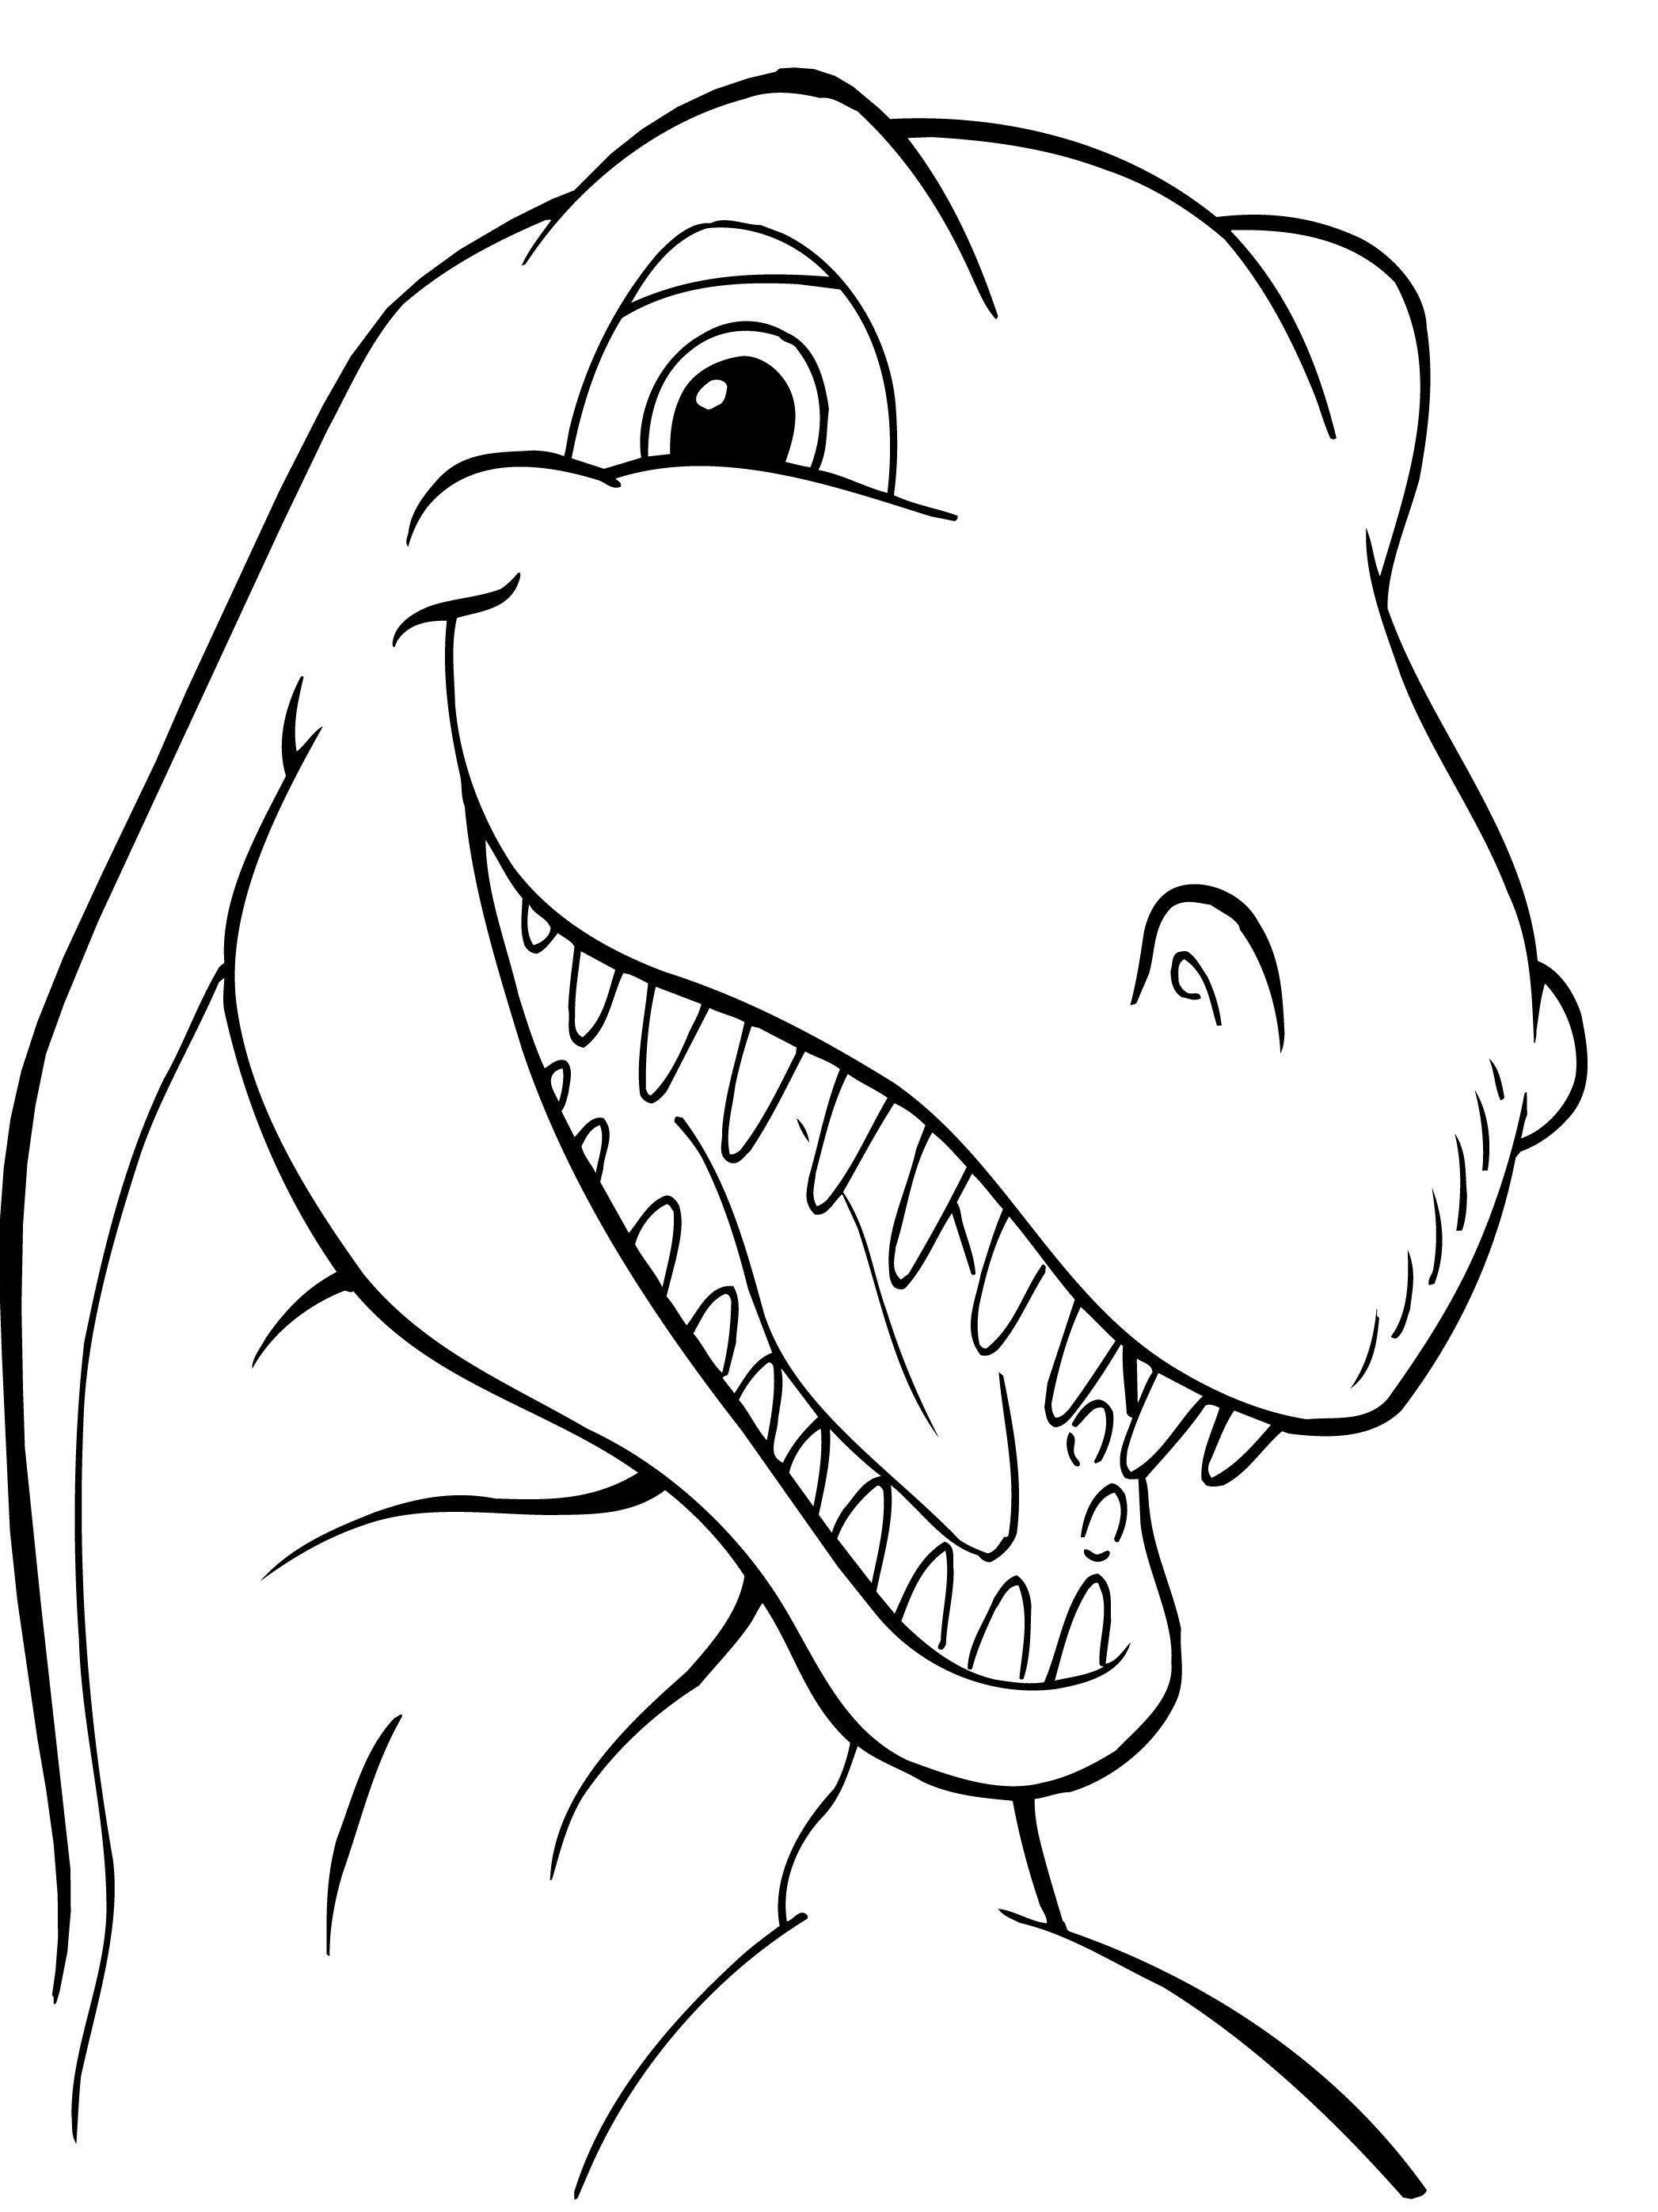 Head Dinosaurs Dinosaurs Pinterest Adult coloring